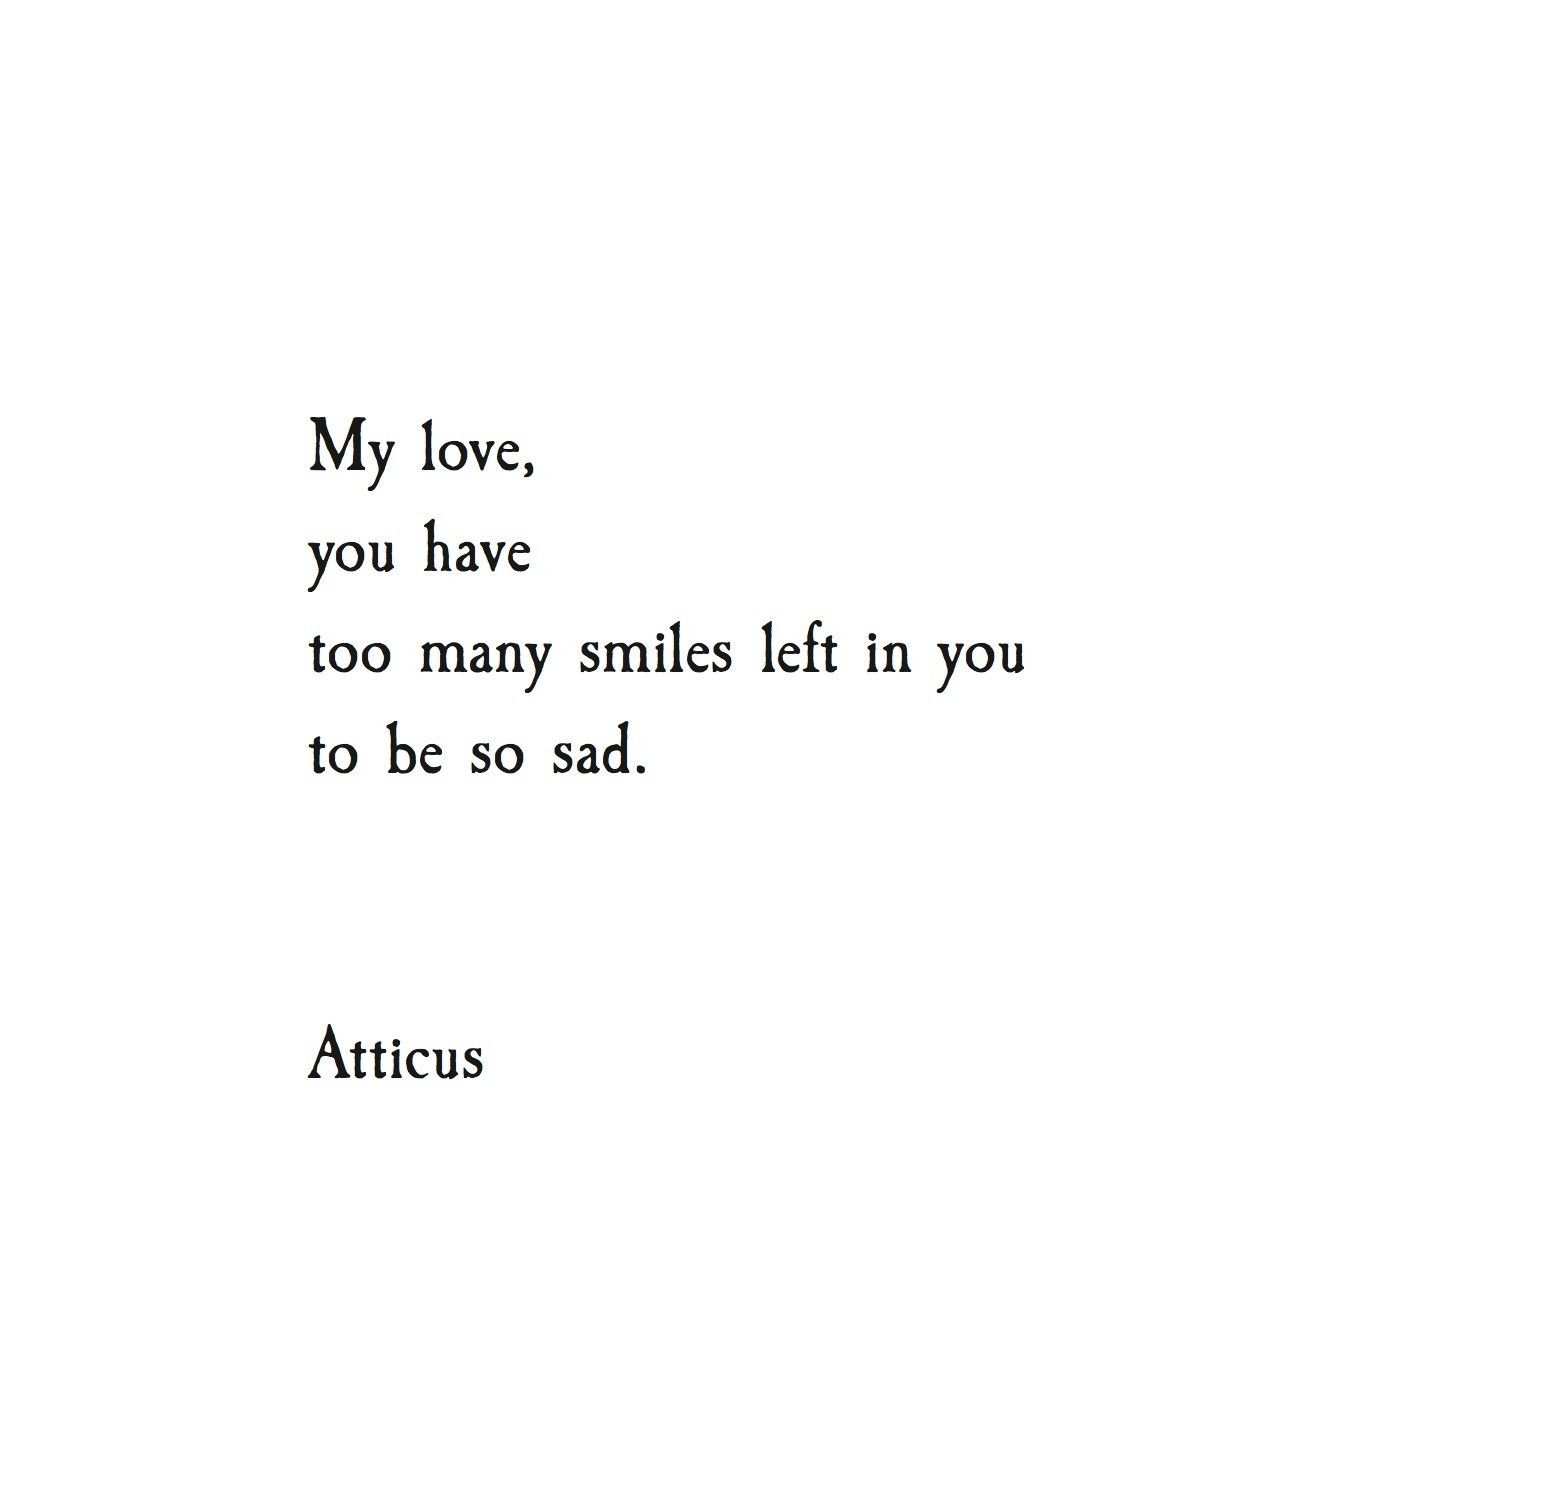 Smile poems and quotes -  My Love Atticuspoetry Atticuspoetry Atticus Poetry Love Sad Atticus Quotesfake Smileso